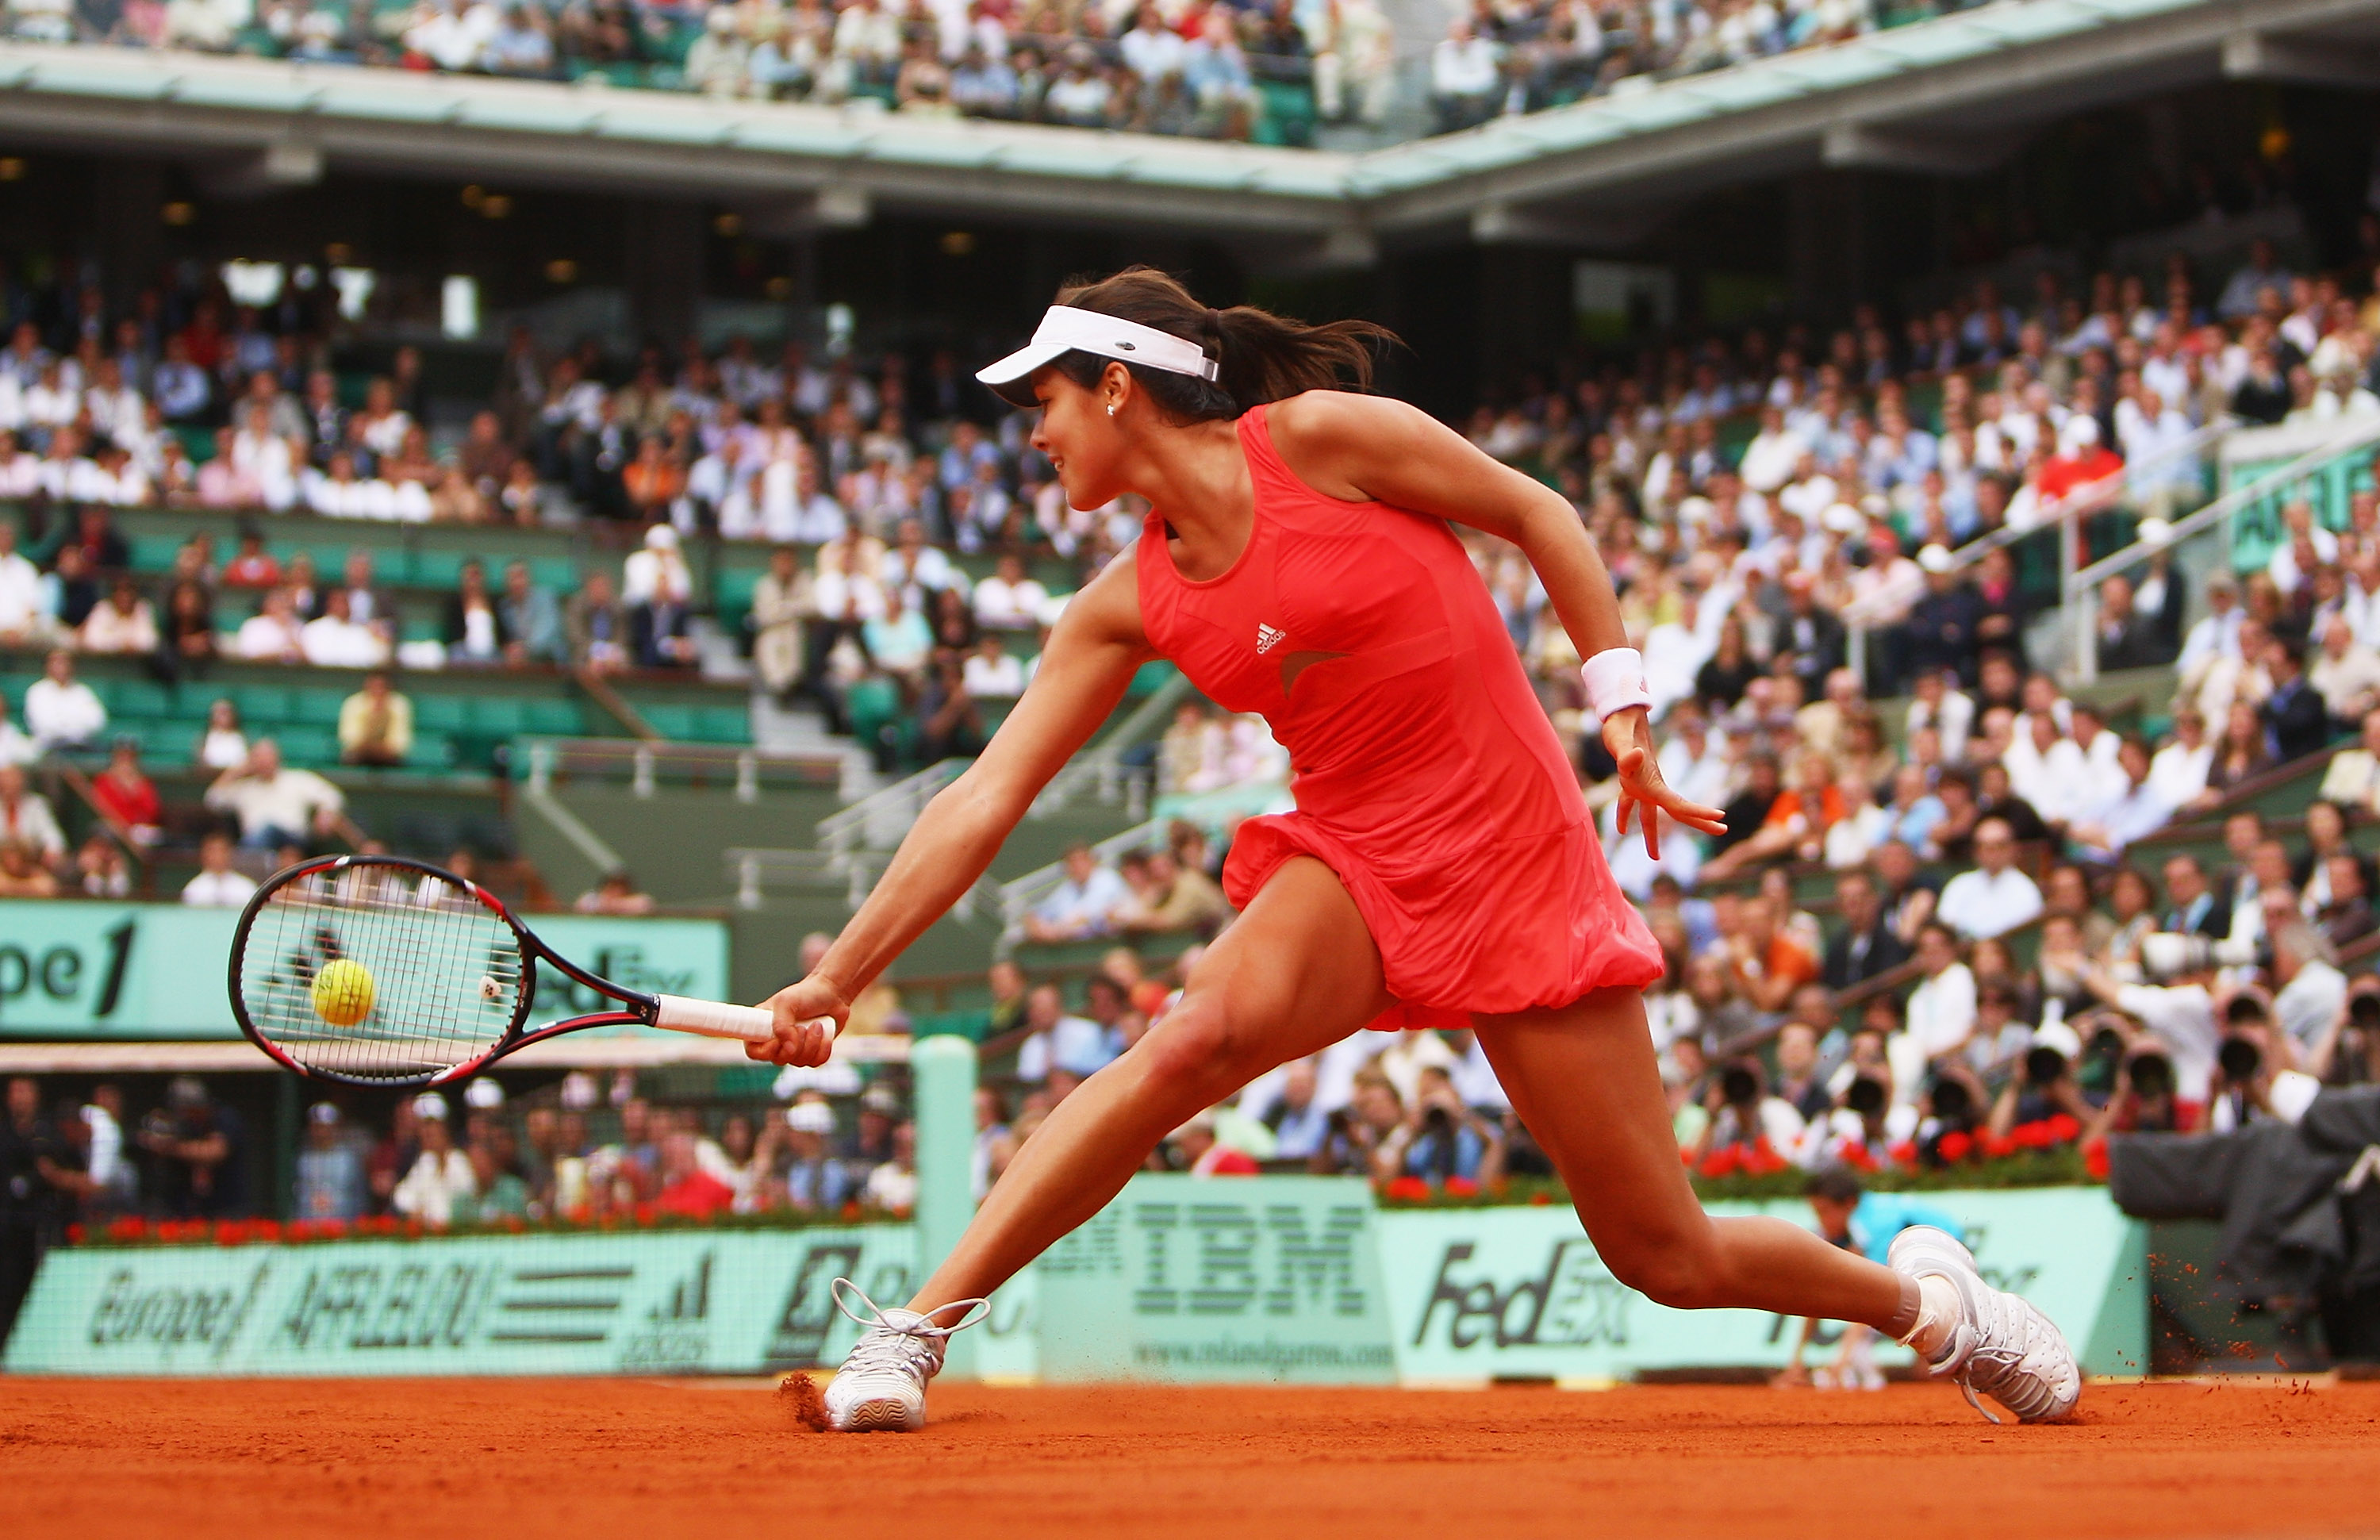 The iconic coral bubble dress launched a champion. Ivanovic won her maiden title at the French Open and took over the No. 1 ranking.